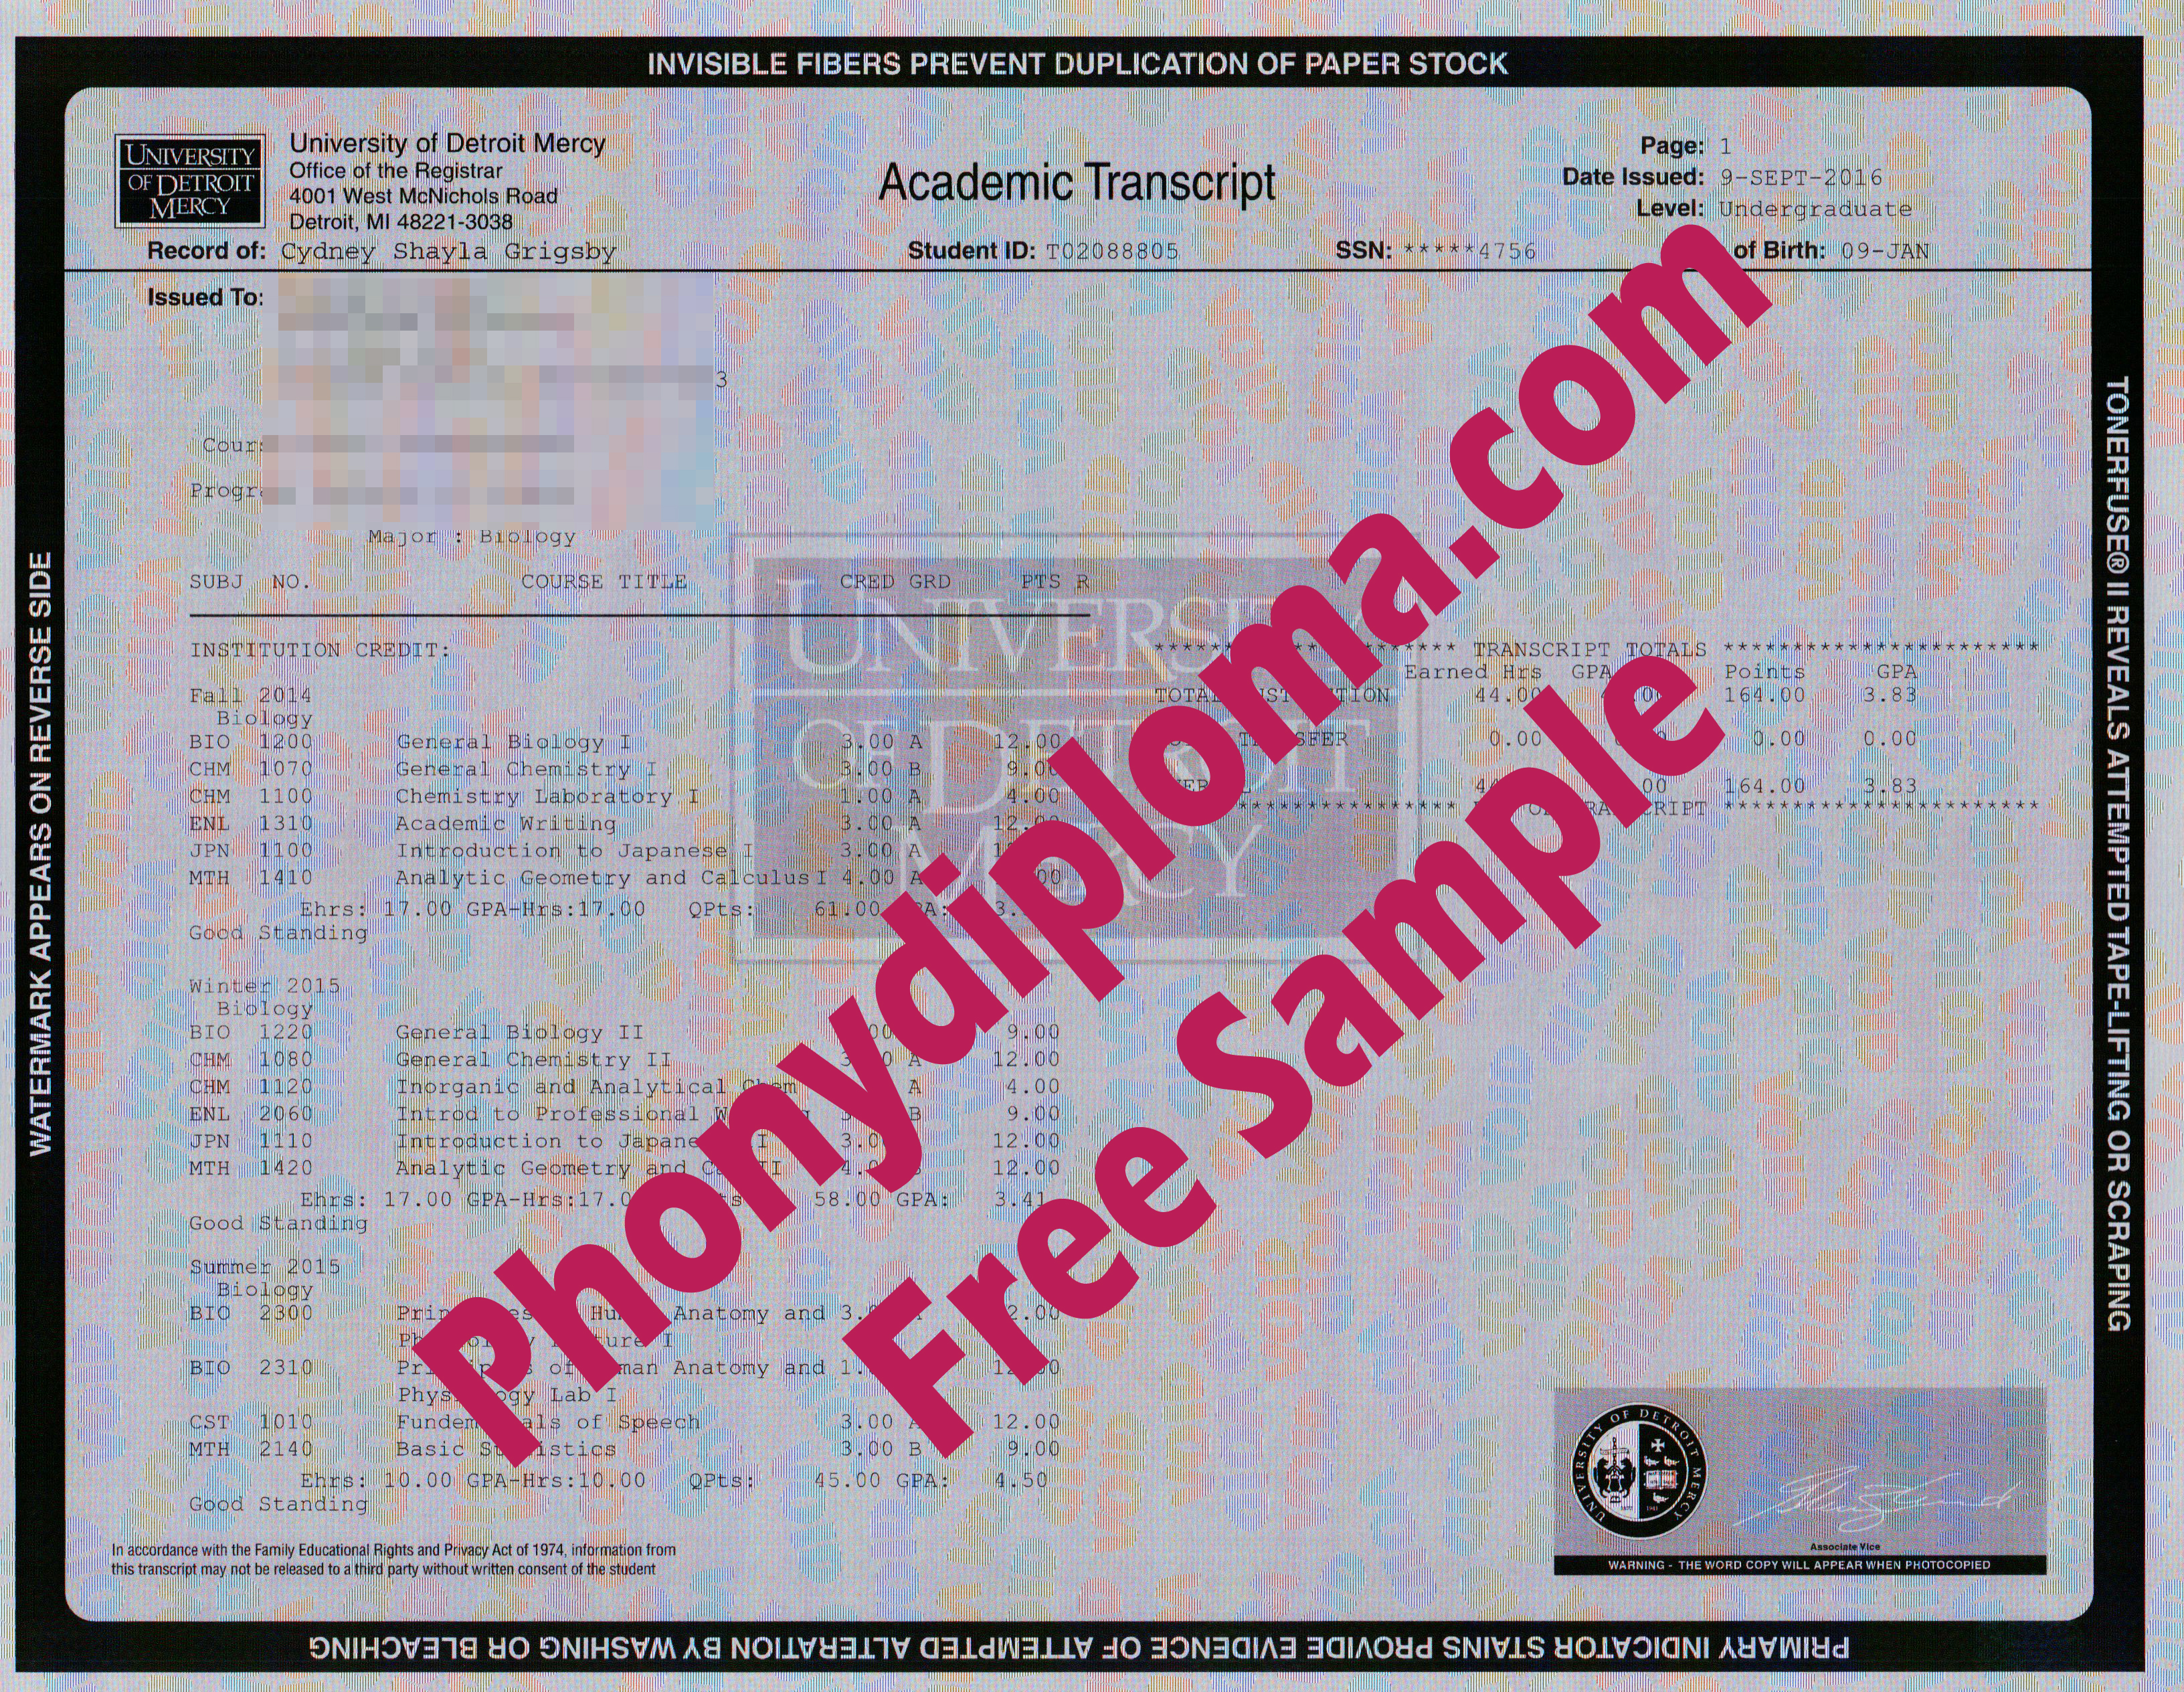 University Of Detroit Mercy Actual Match Transcripts Free Sample From Phonydiploma